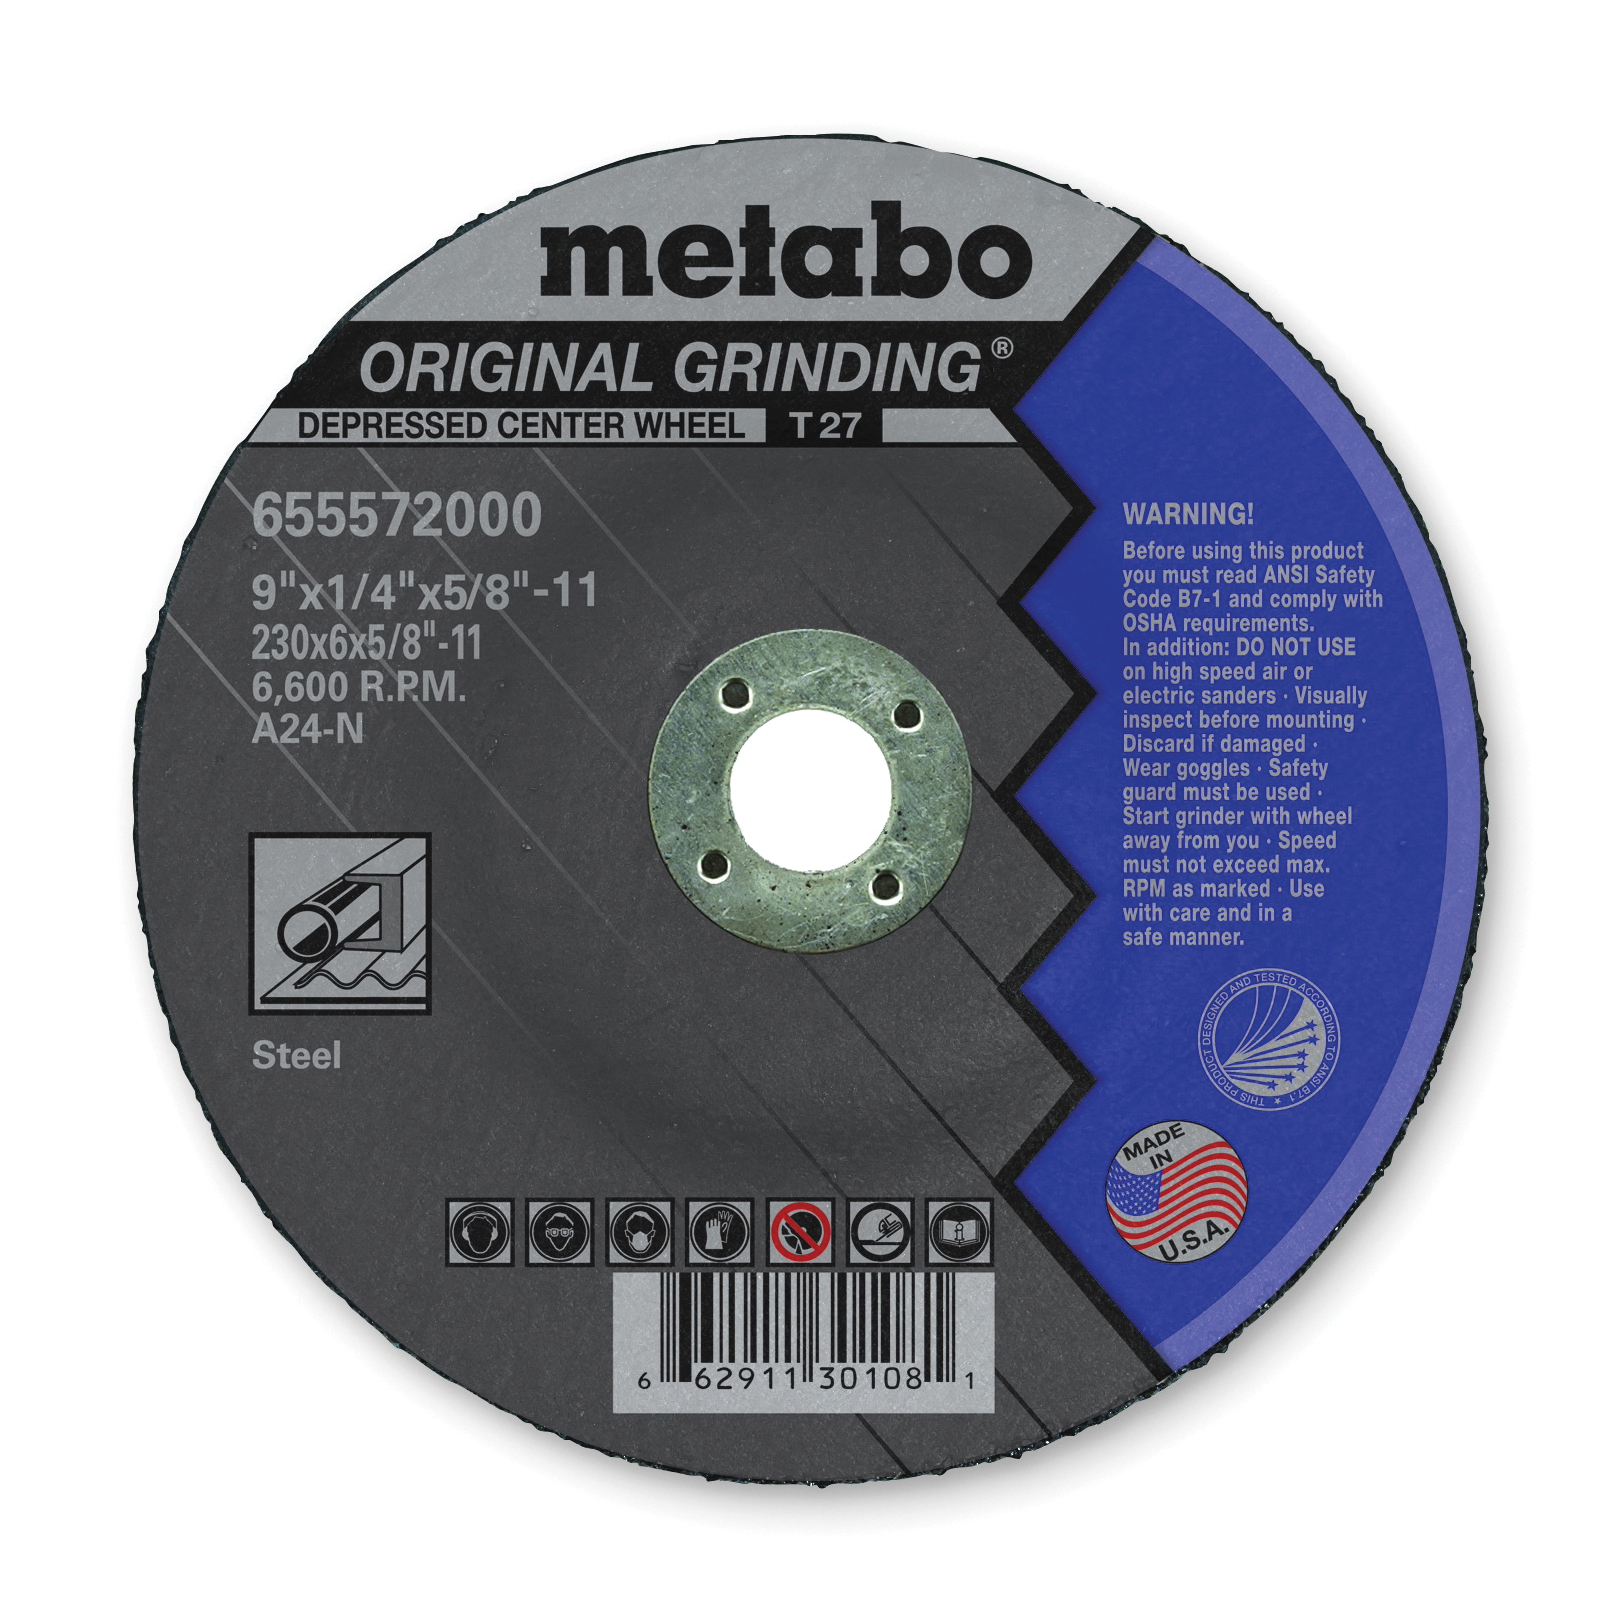 metabo® 655572000 Original Grinding® General Purpose Depressed Center Wheel With Hub, 9 in Dia x 1/4 in THK, A24N Grit, Aluminum Oxide Abrasive